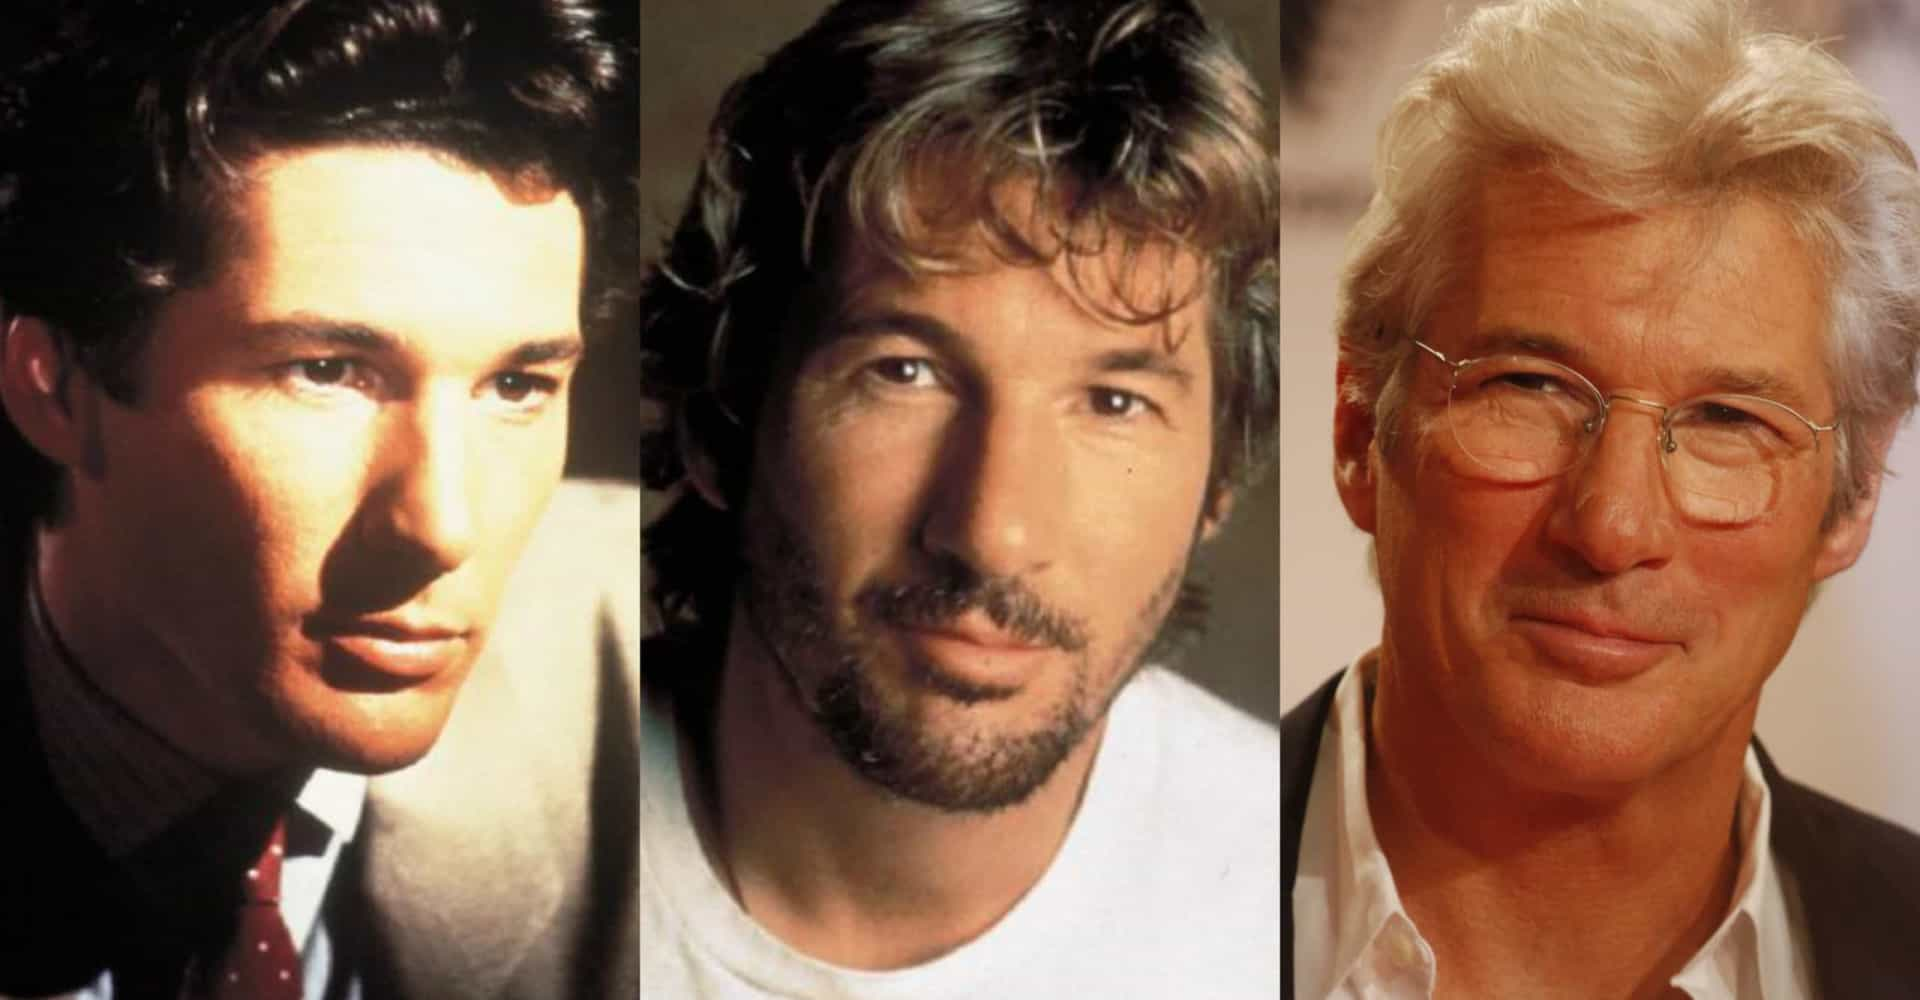 The king of rom-com: Richard Gere's classic movies